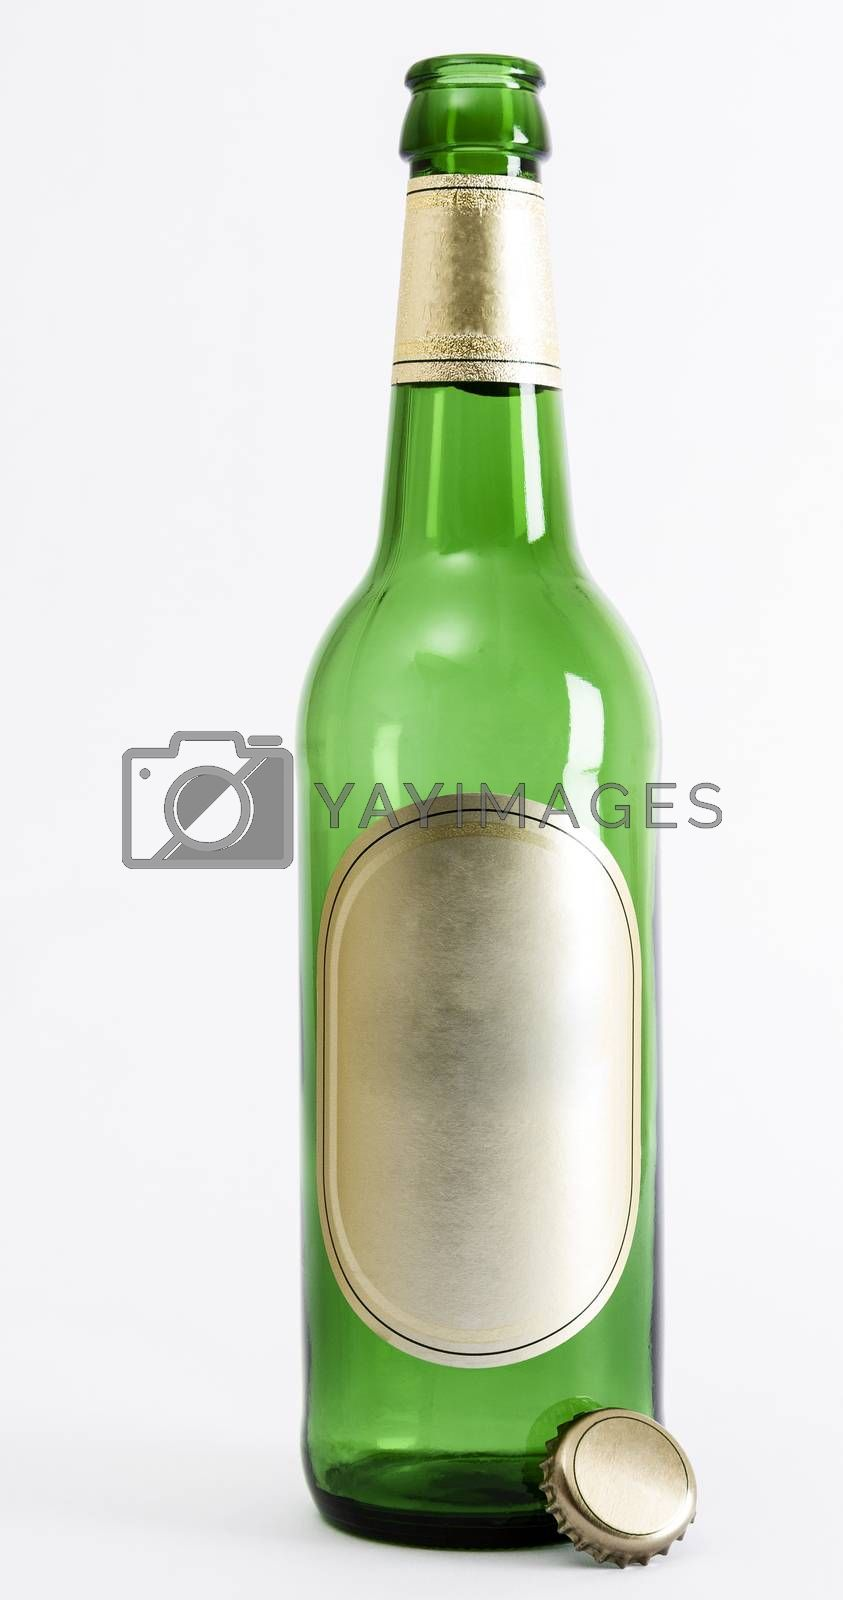 empty green beer bottle with crown seal in light background